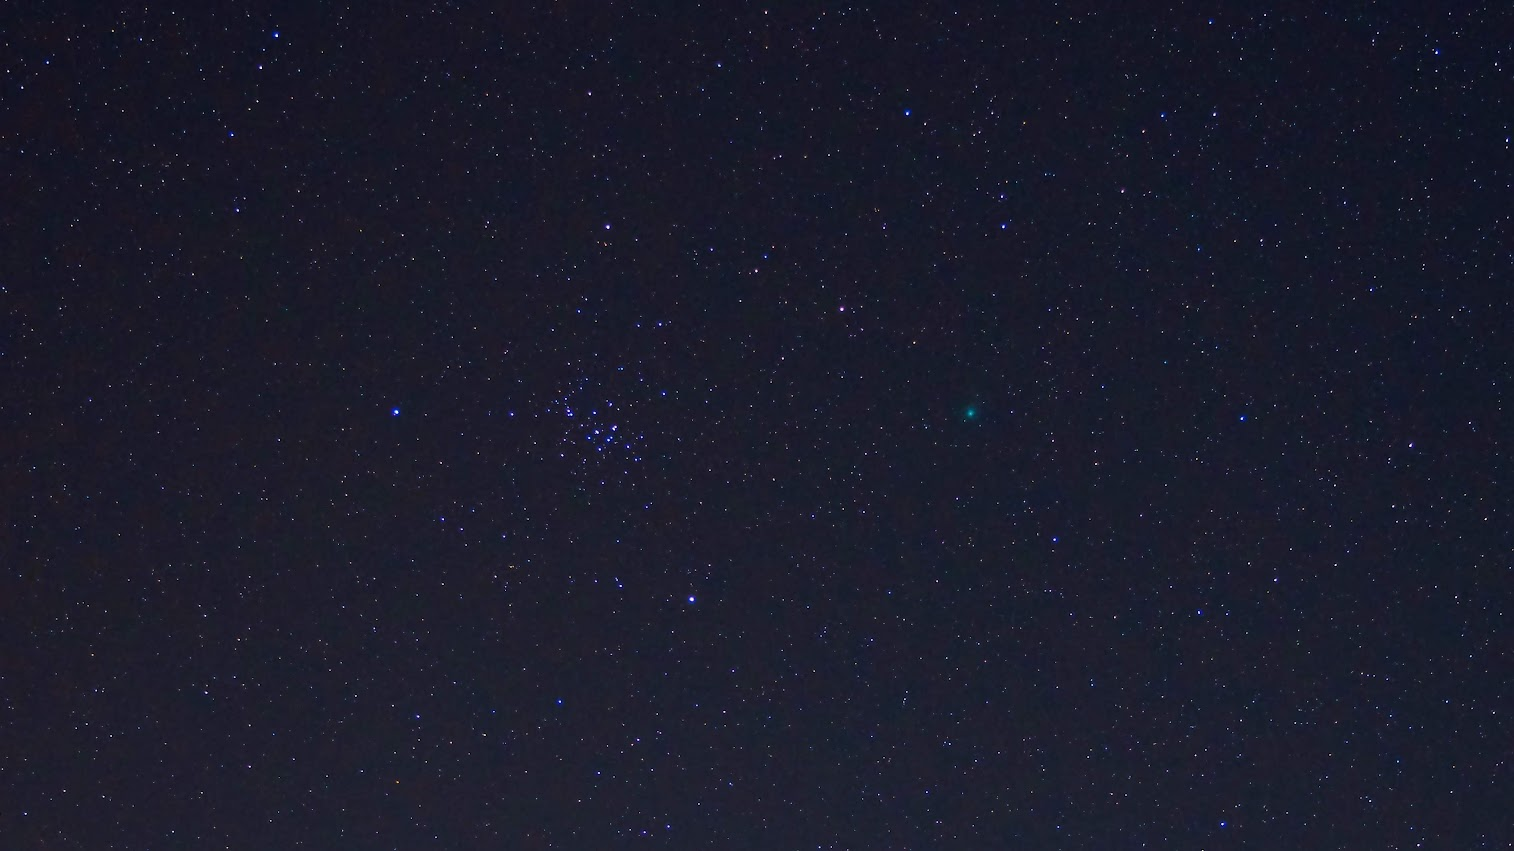 M44 and Comet Lovejoy (C/2013 R1) on November 6, 2013